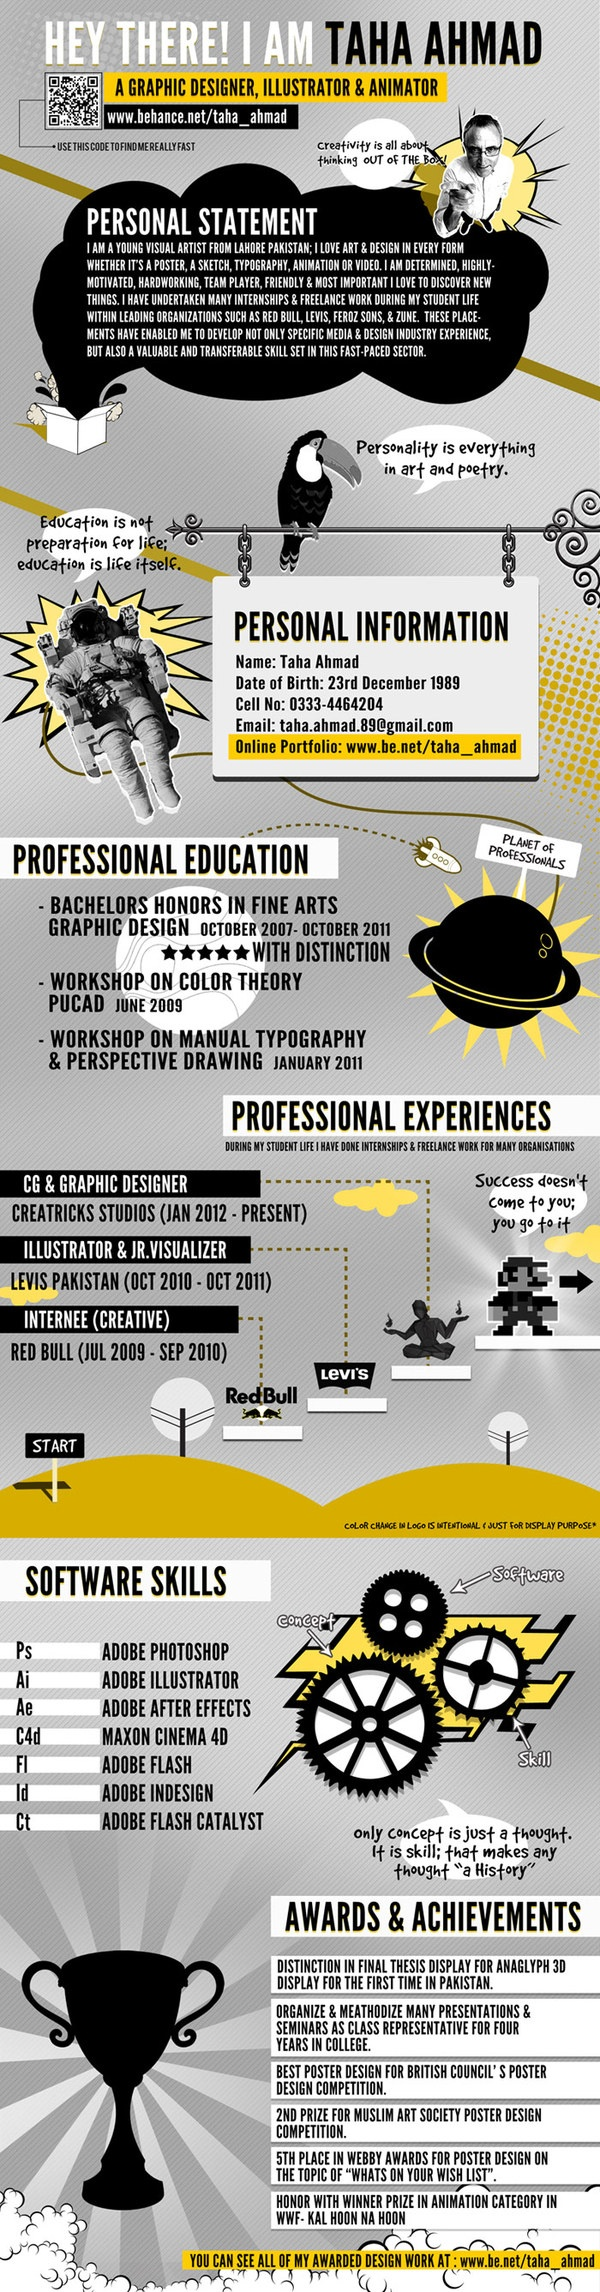 66 best images about resume cv on pinterest